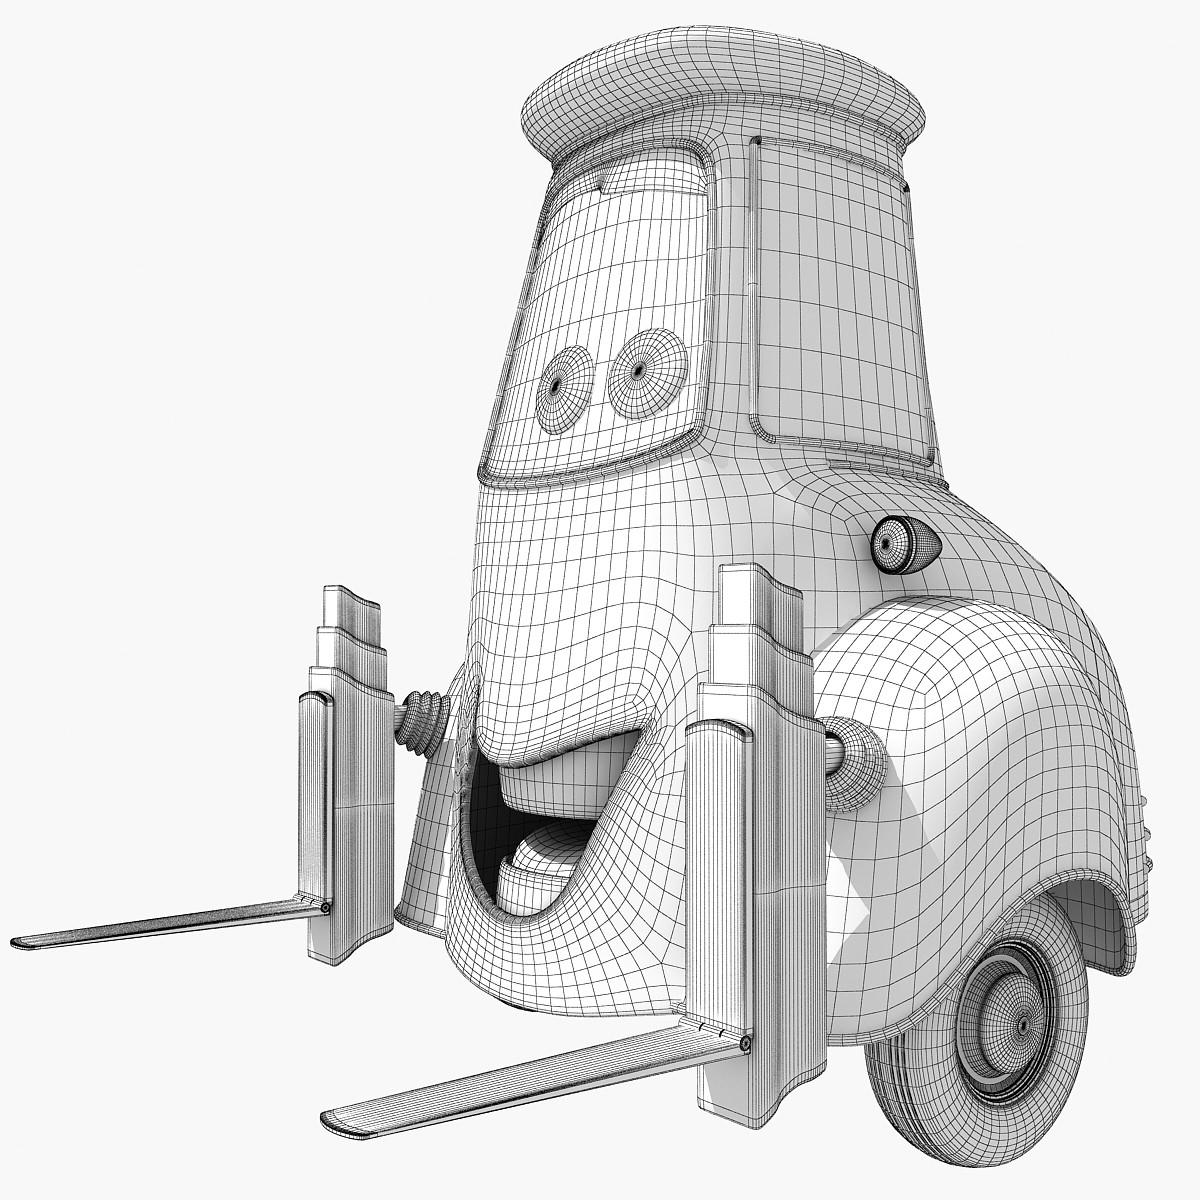 3d model of Guido from Cars2 movie